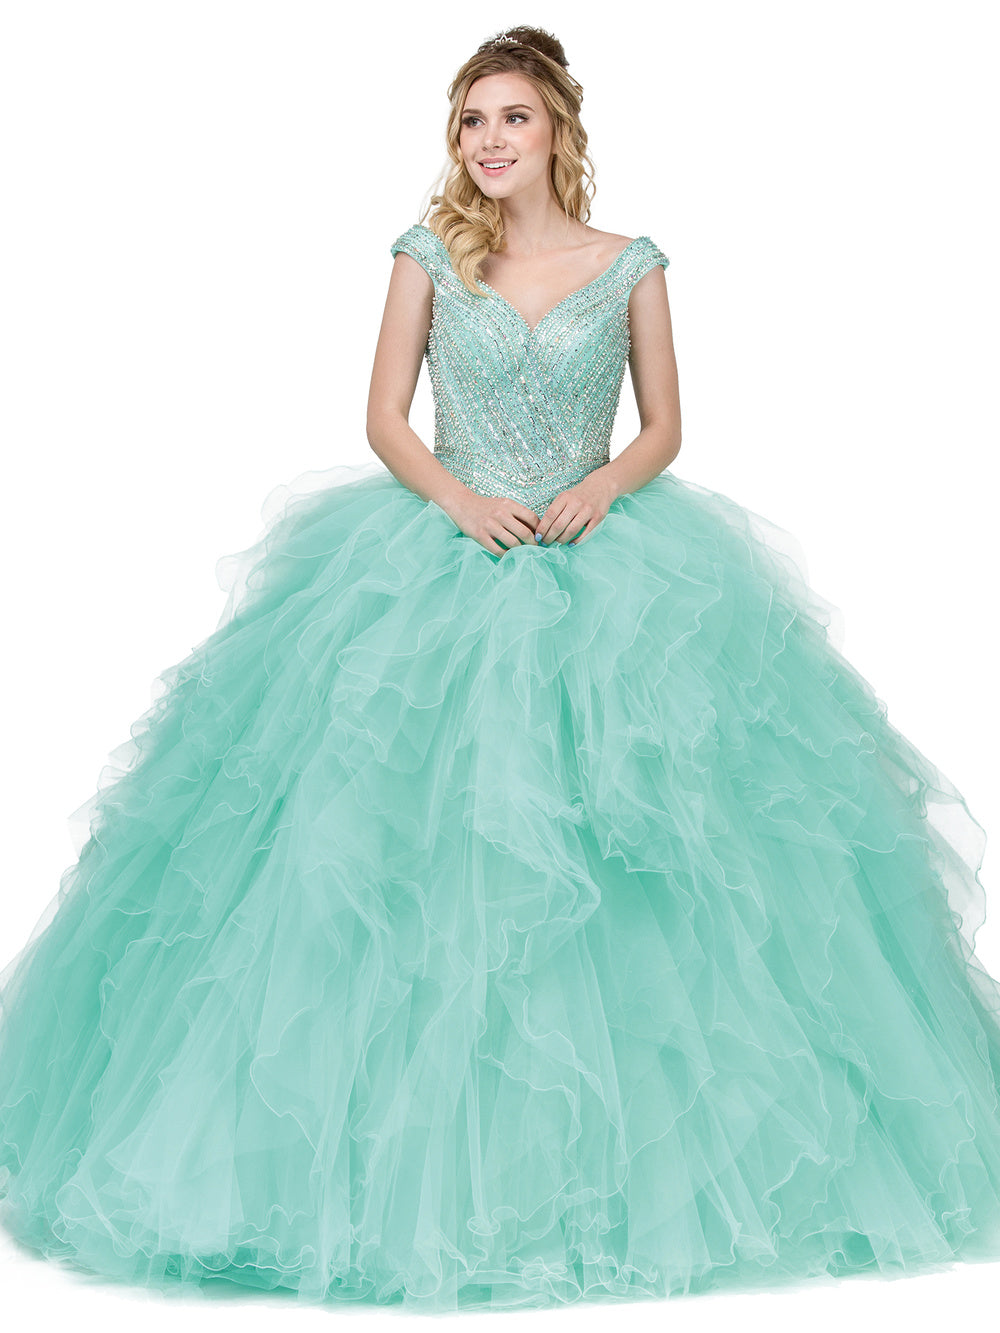 Dress2018 QUINCEANERA DQ1273